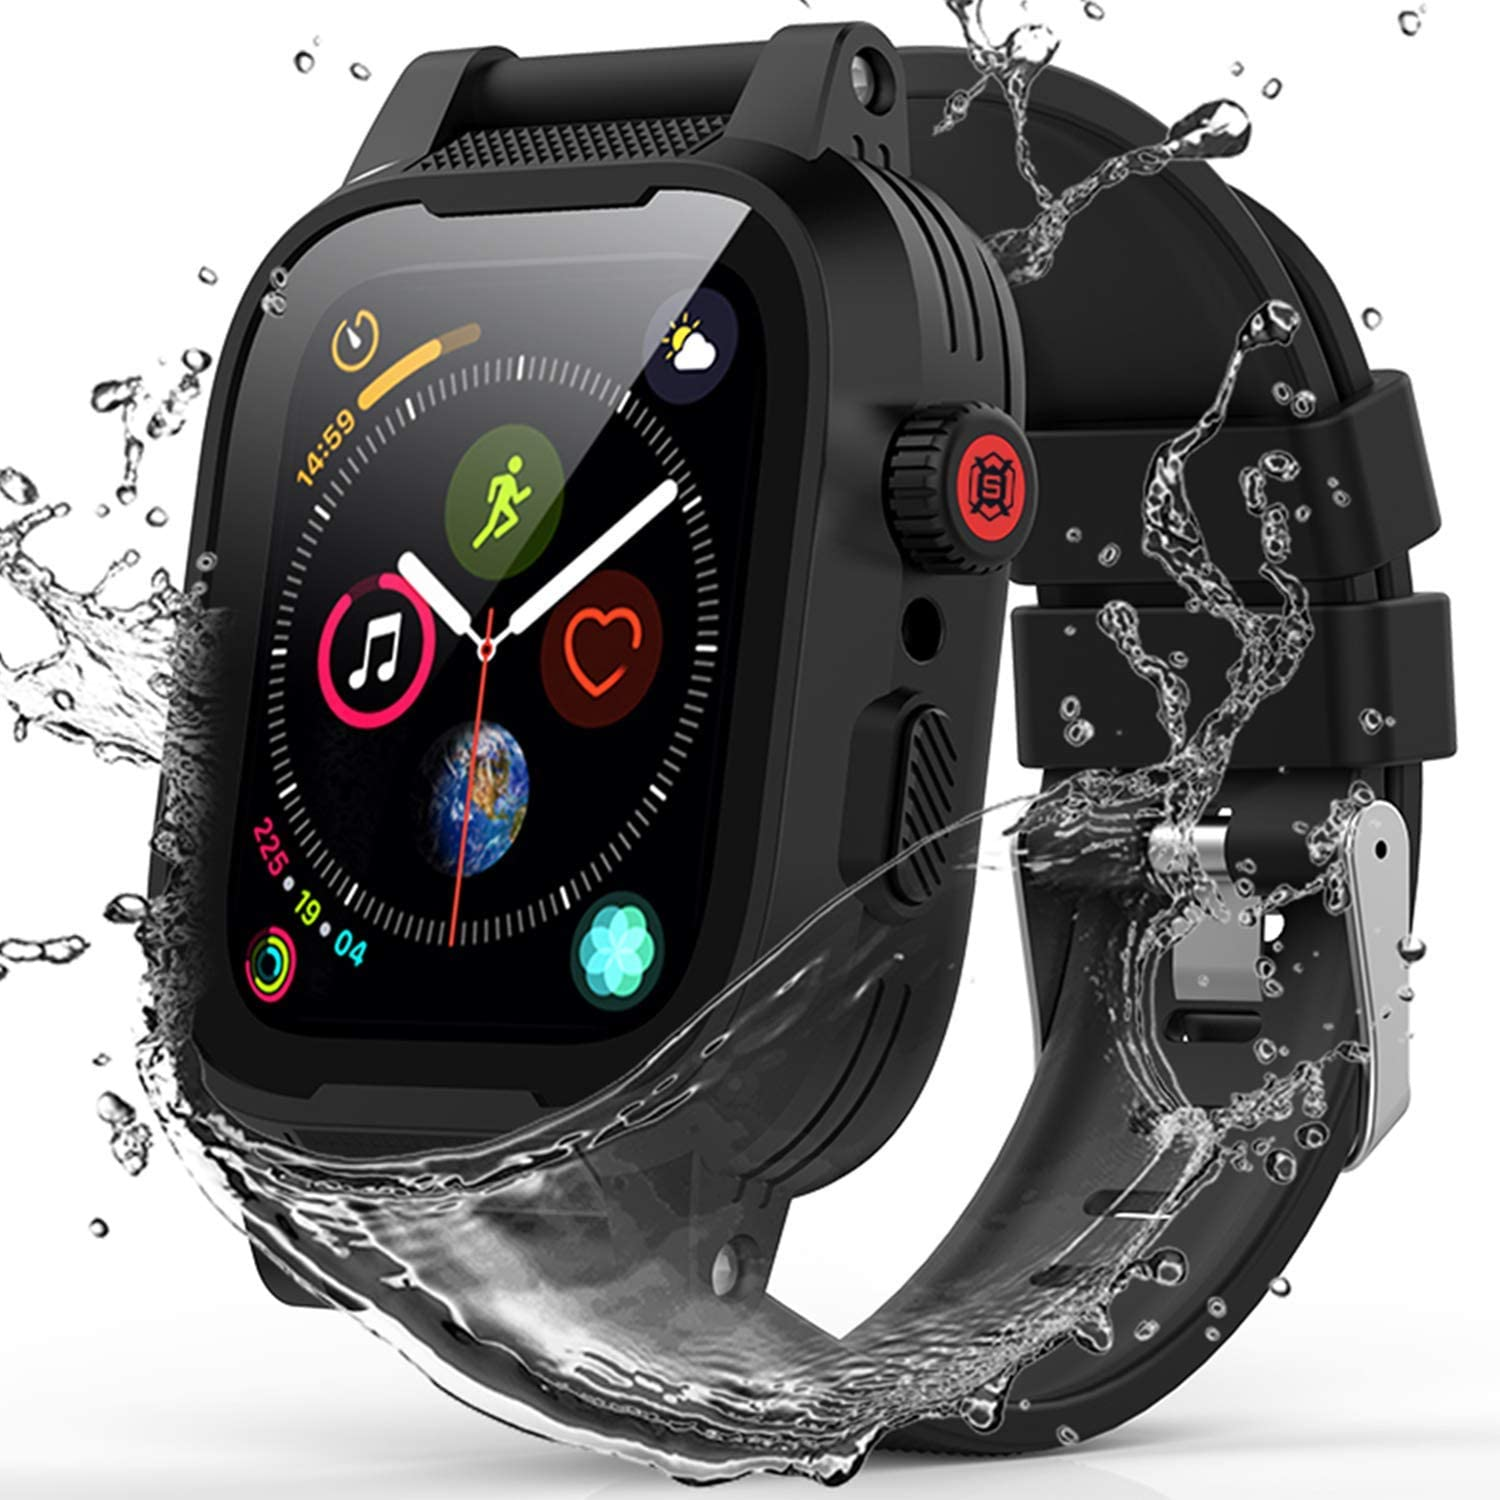 Upgrade for Apple Watch Case Series 2/3 42mm, YOGRE IP68 Waterproof Shockproof Dustproof Anti-Scratch Built-in Screen Protector iWatch Case All Round Protector Case (Add 2 Silicone Bands)